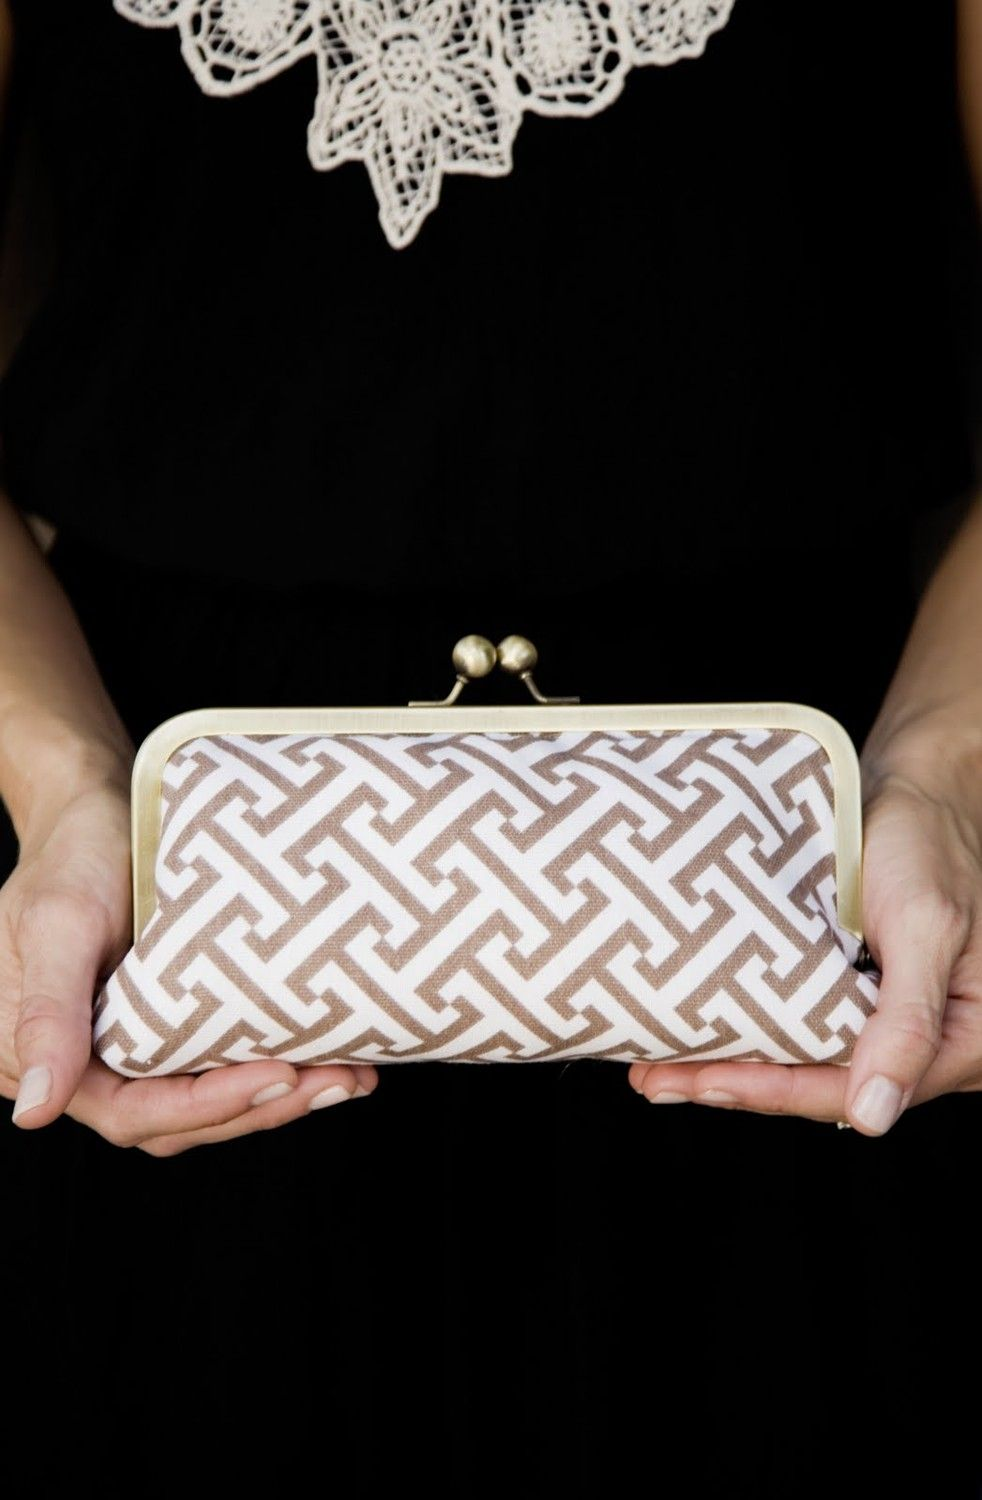 Items similar to geometric genevieve clutch (available in GRAY only) on Etsy